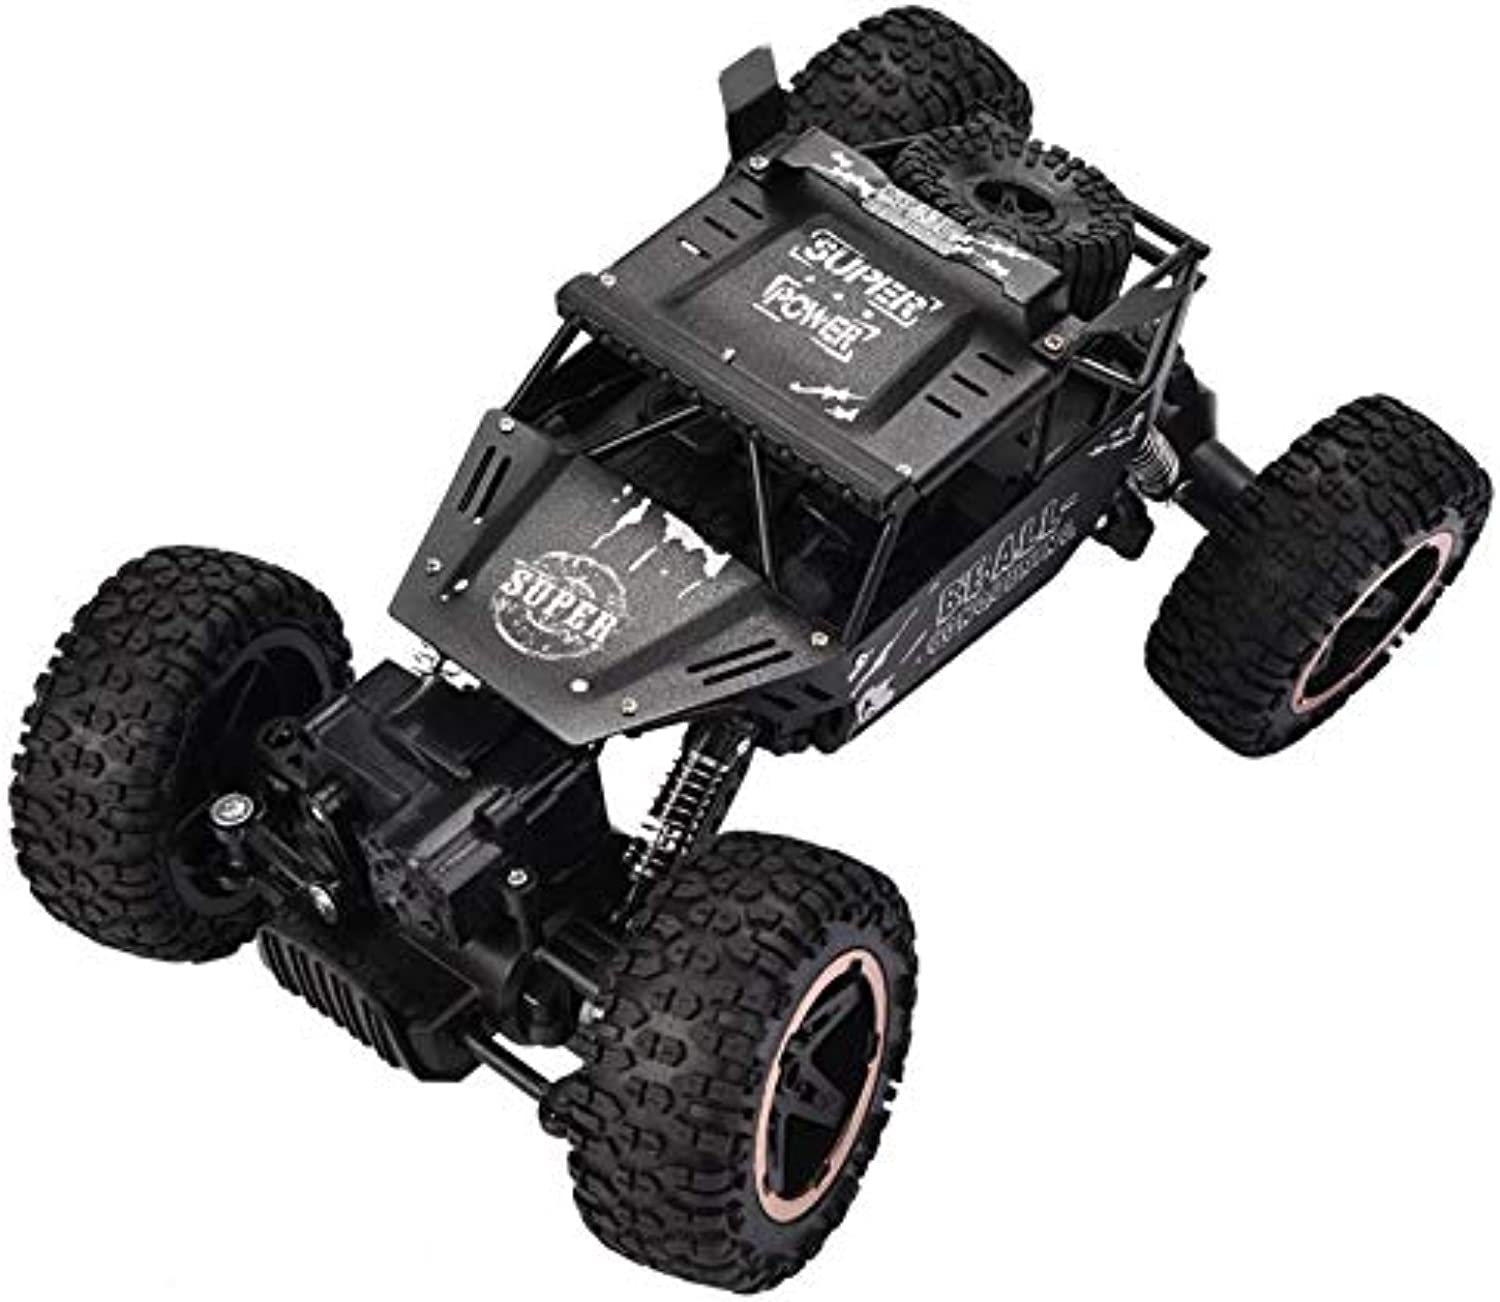 Generic High Speed 2.4GHz Frequency Climbing Remote Control Carro Alloy Vehicle FourWheel Drive OffRoad RC Electric Crawler Car 1 20 R Black